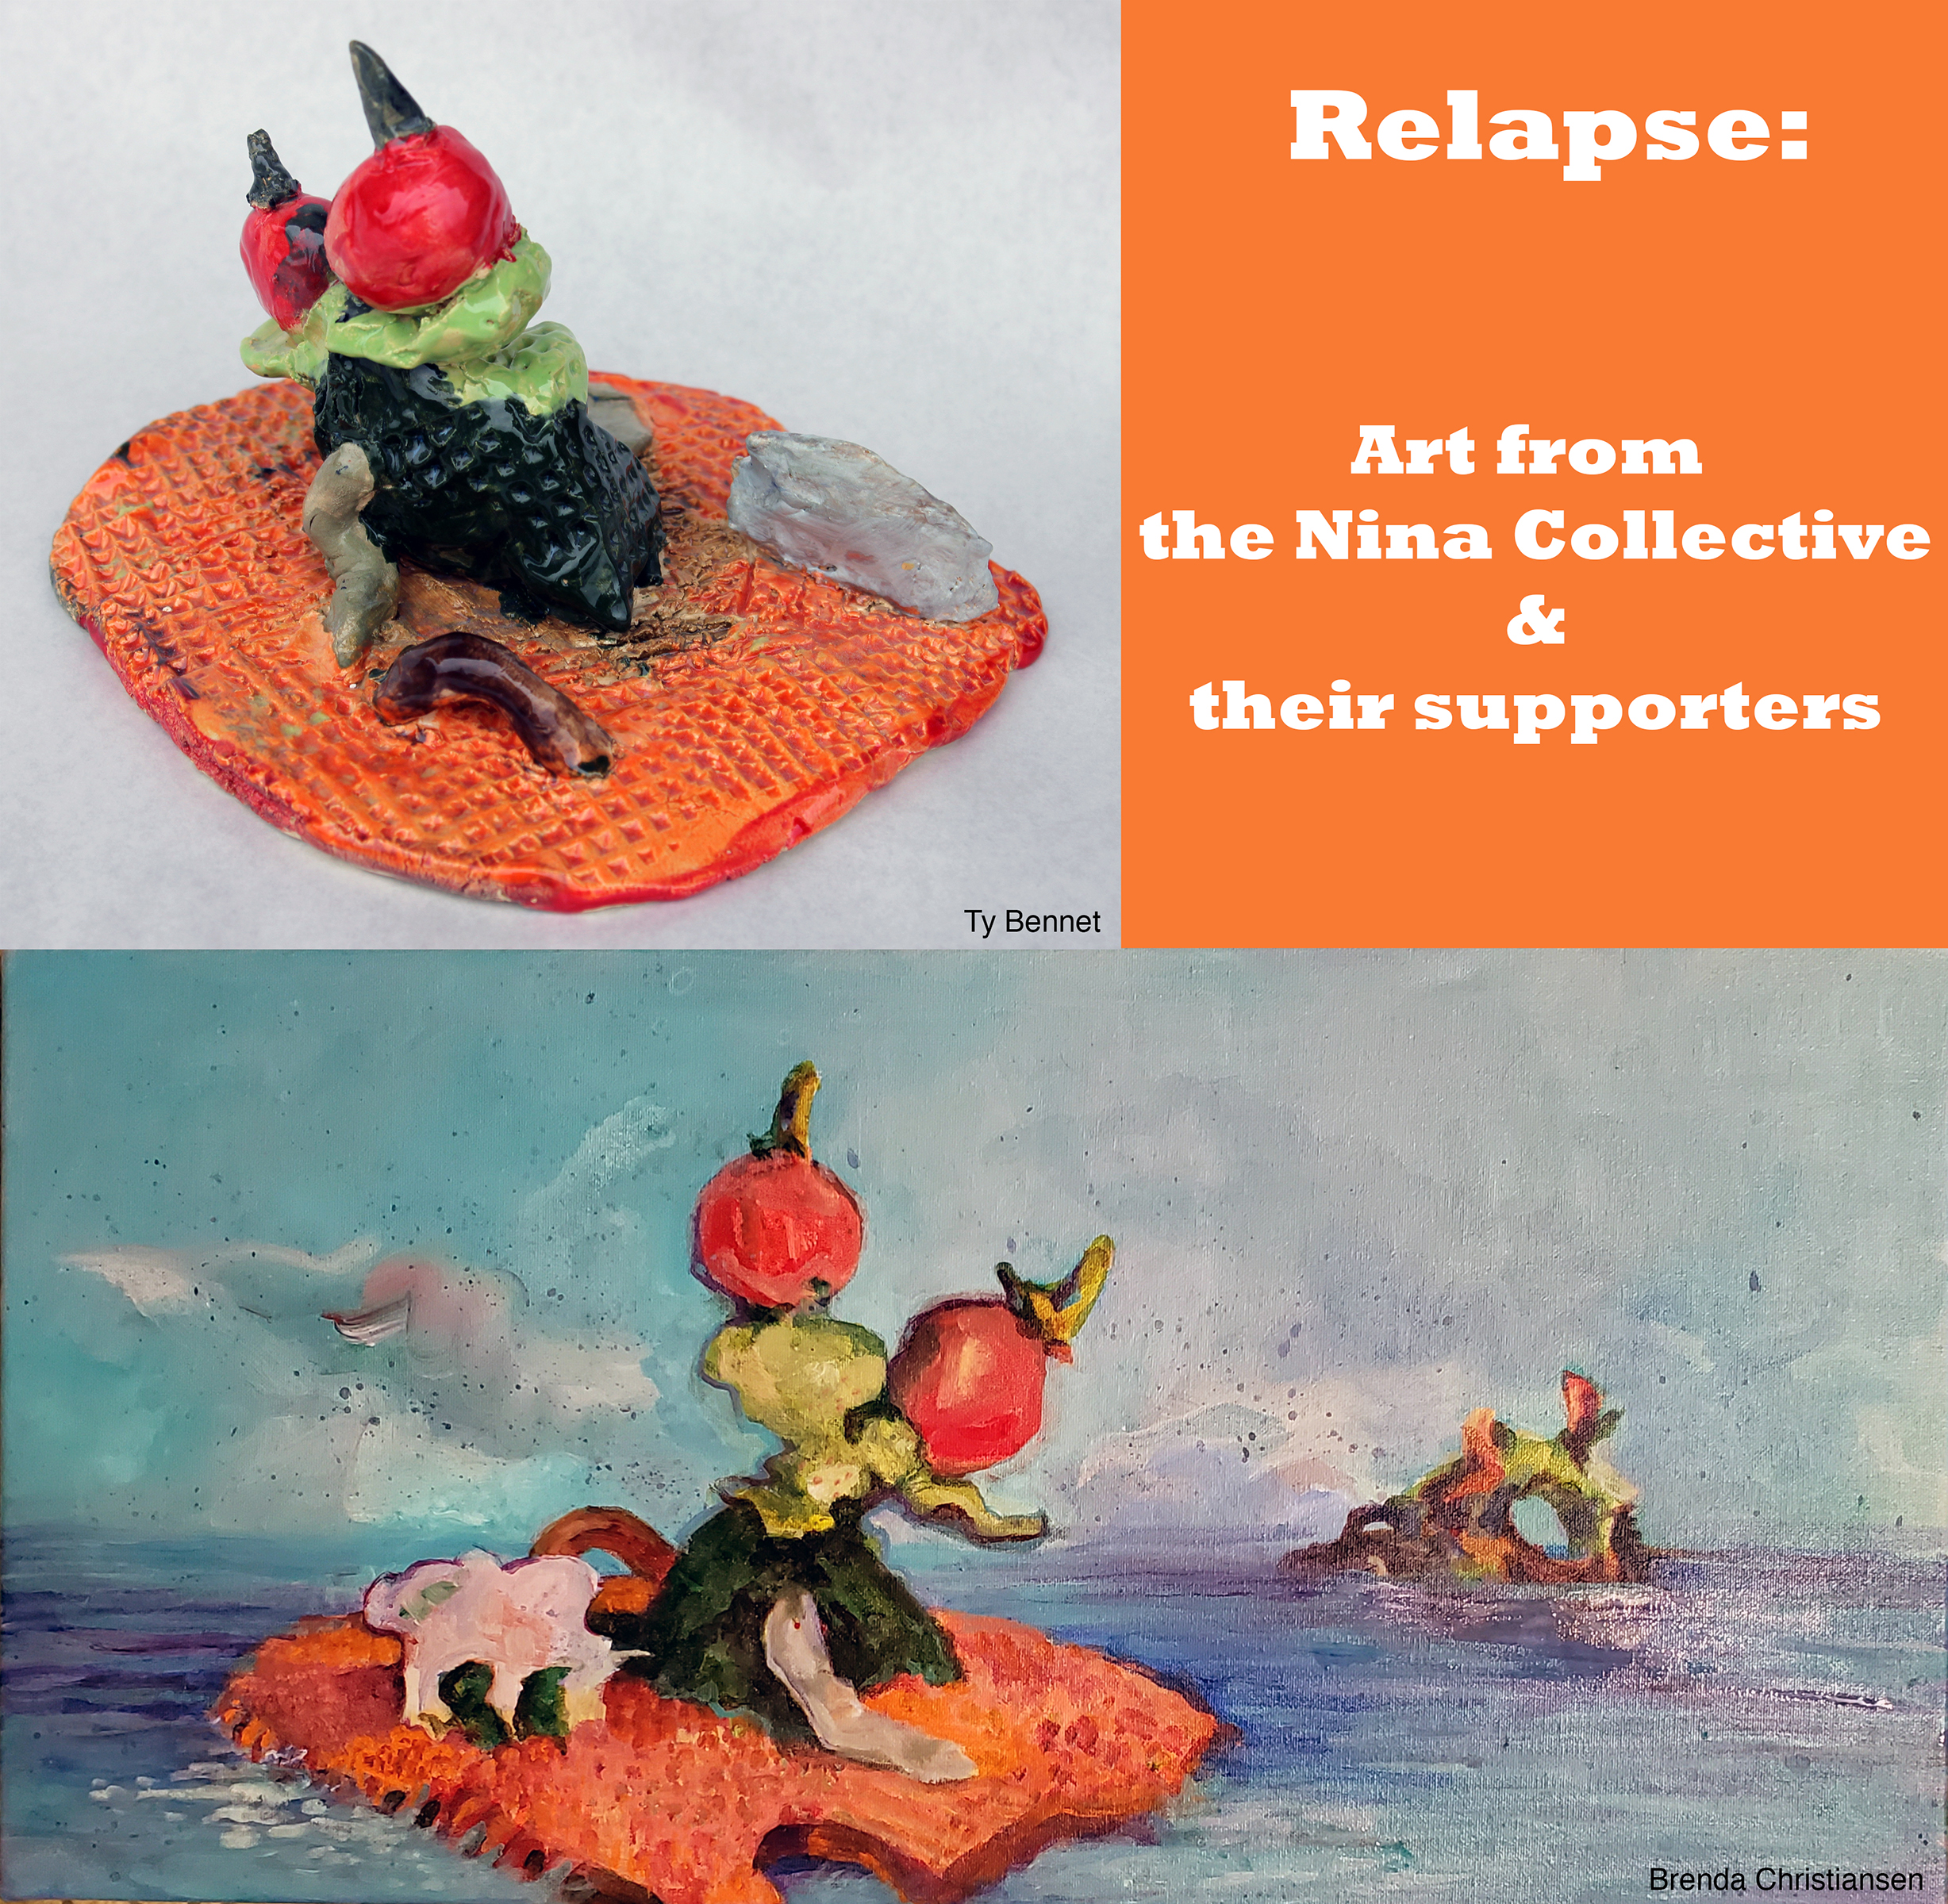 Relapse: Art from the Nina Collective & Their Supporters